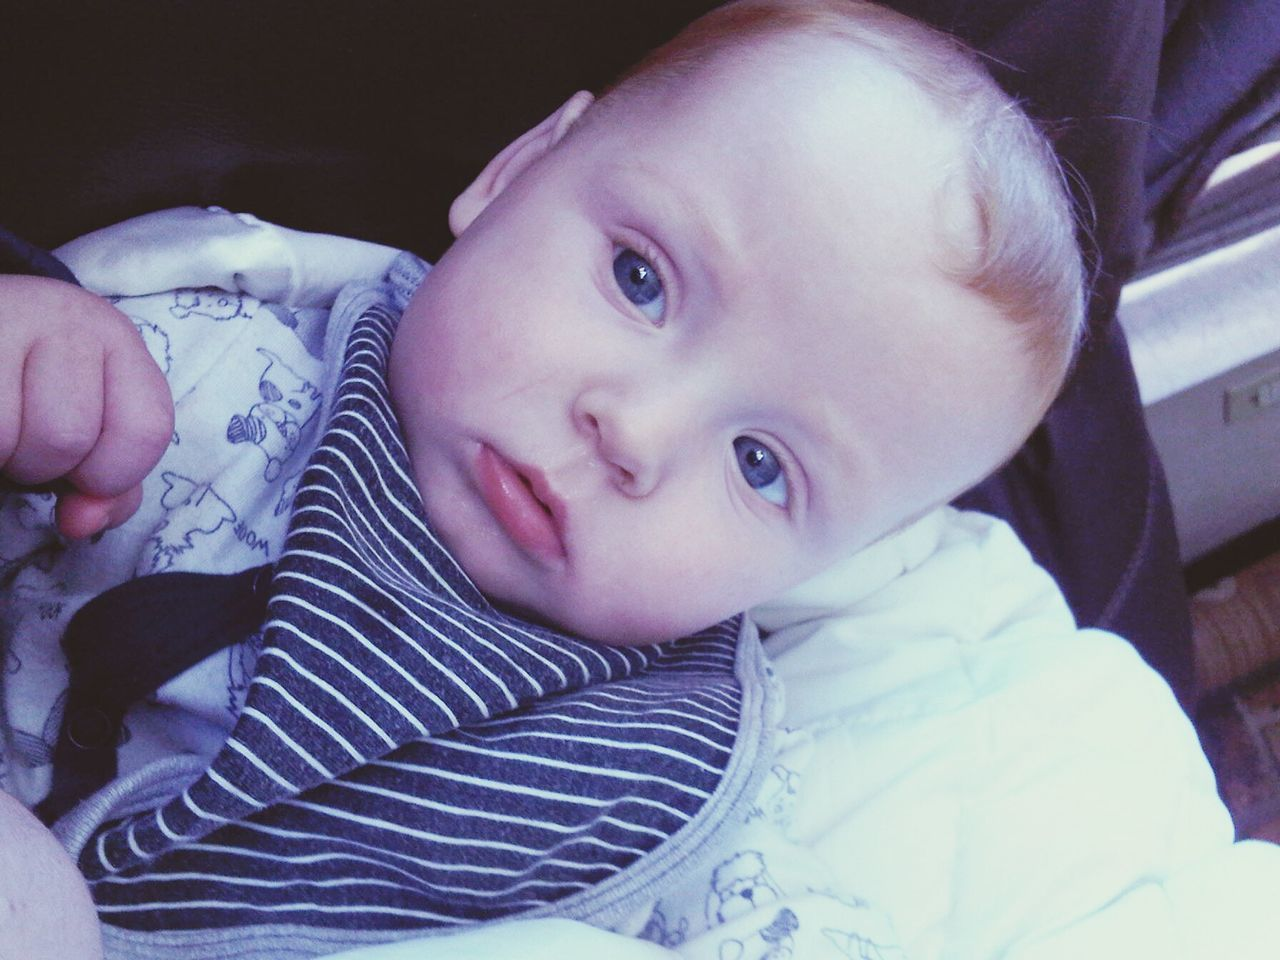 Blue RedHAIR ❤ Mybabyboy❤️❤️❤️❤️ Beautiful ♥ Perfection Perfection❤❤❤ 6months <3 Looking At Camera Portrait Child One Person People Childhood Indoors  Close-up Human Body Part Adult Day